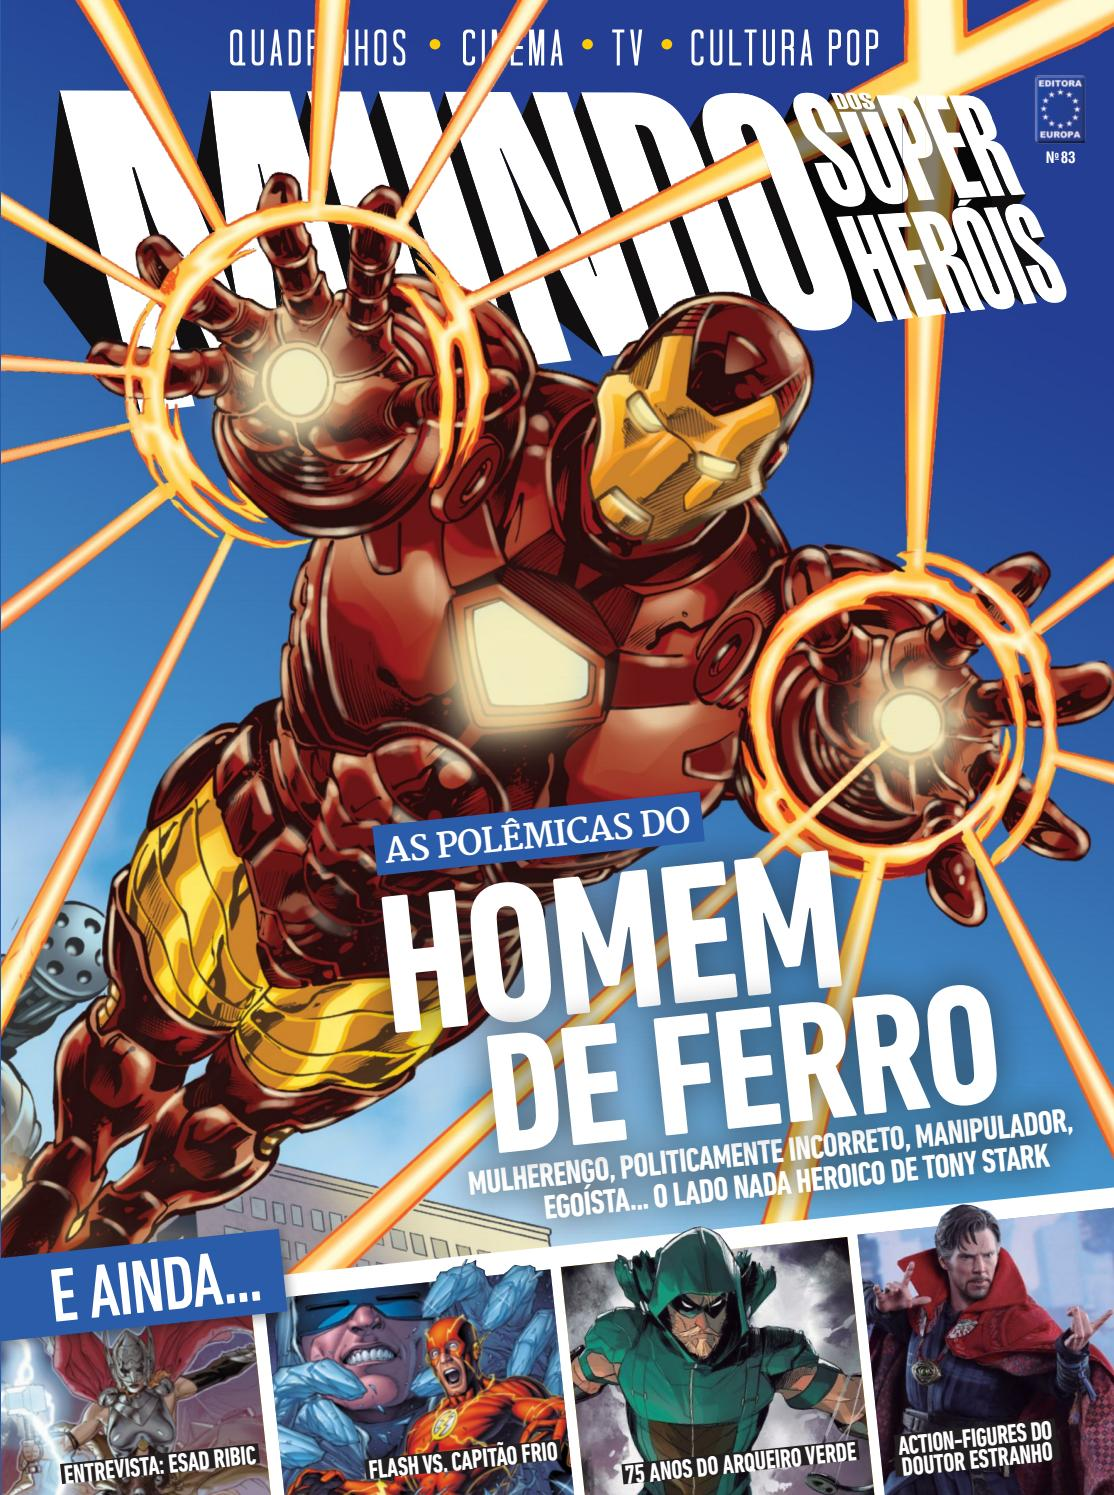 87766edf113 Mundo dos super heróis vol 83 by Carlos Silva - issuu